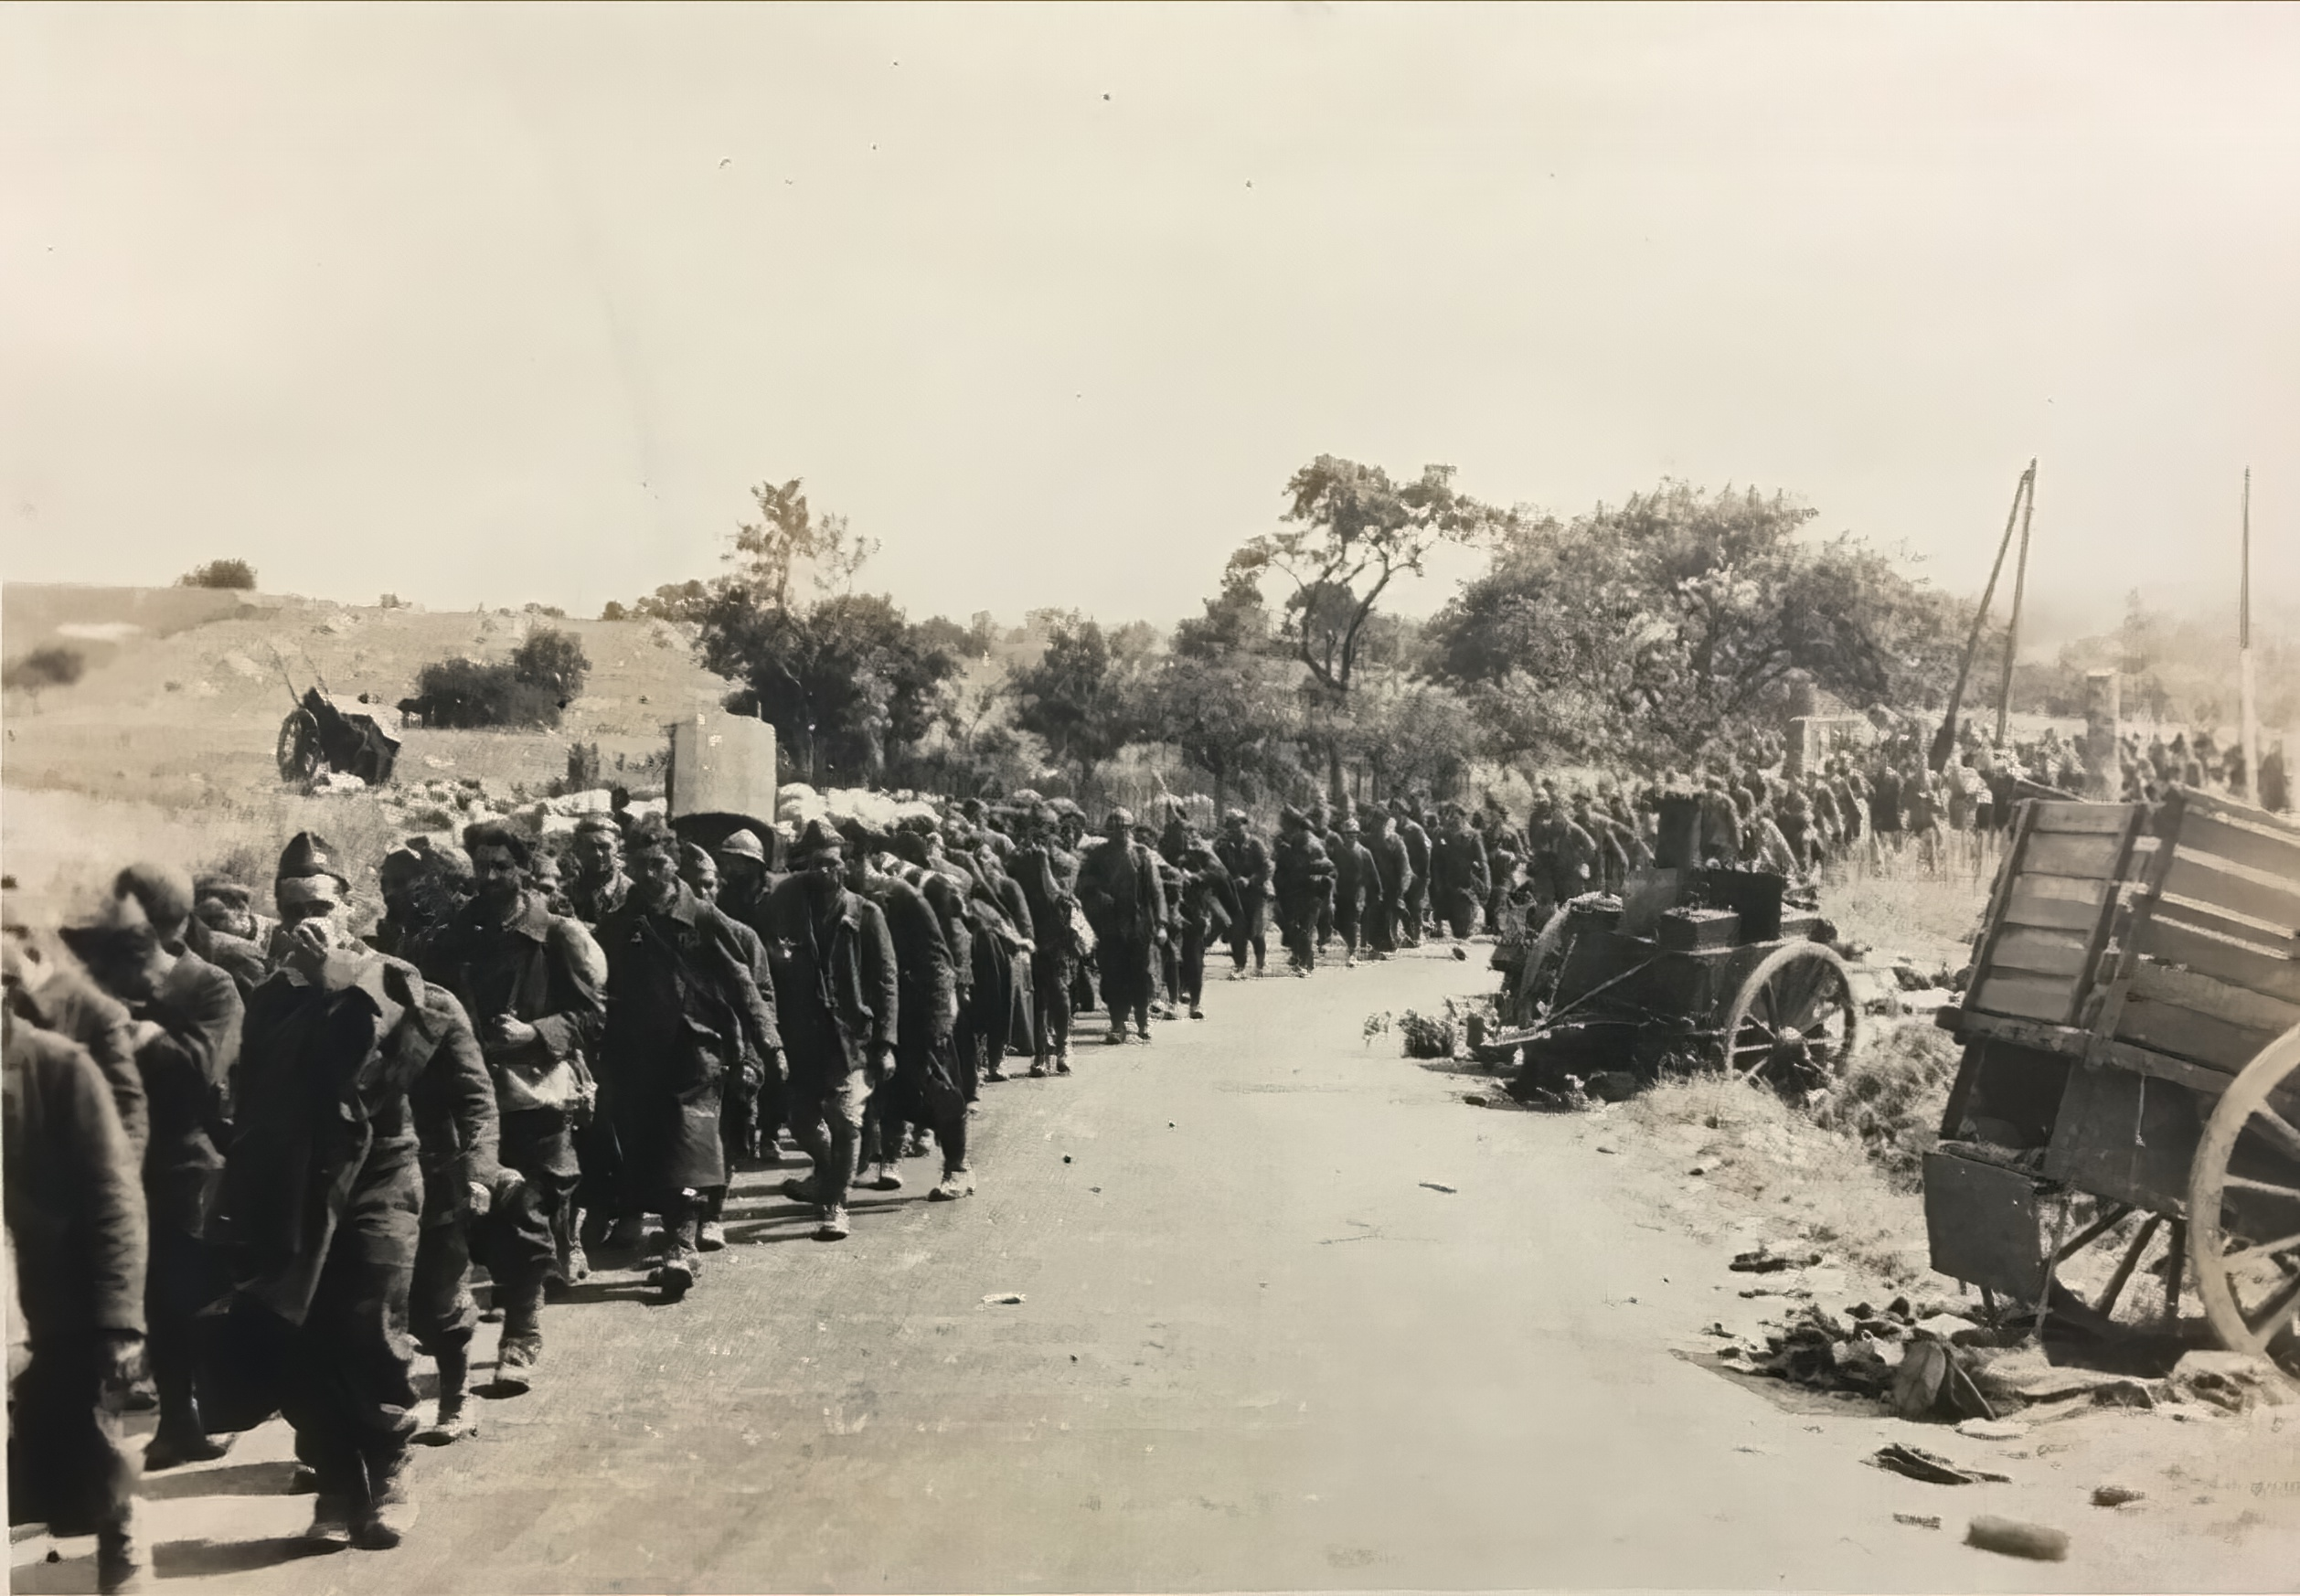 French Algerian POWs from LnAbt(H) mot 7 Algeria being interned after Frances capitulation 25th June 1940 ebay 03